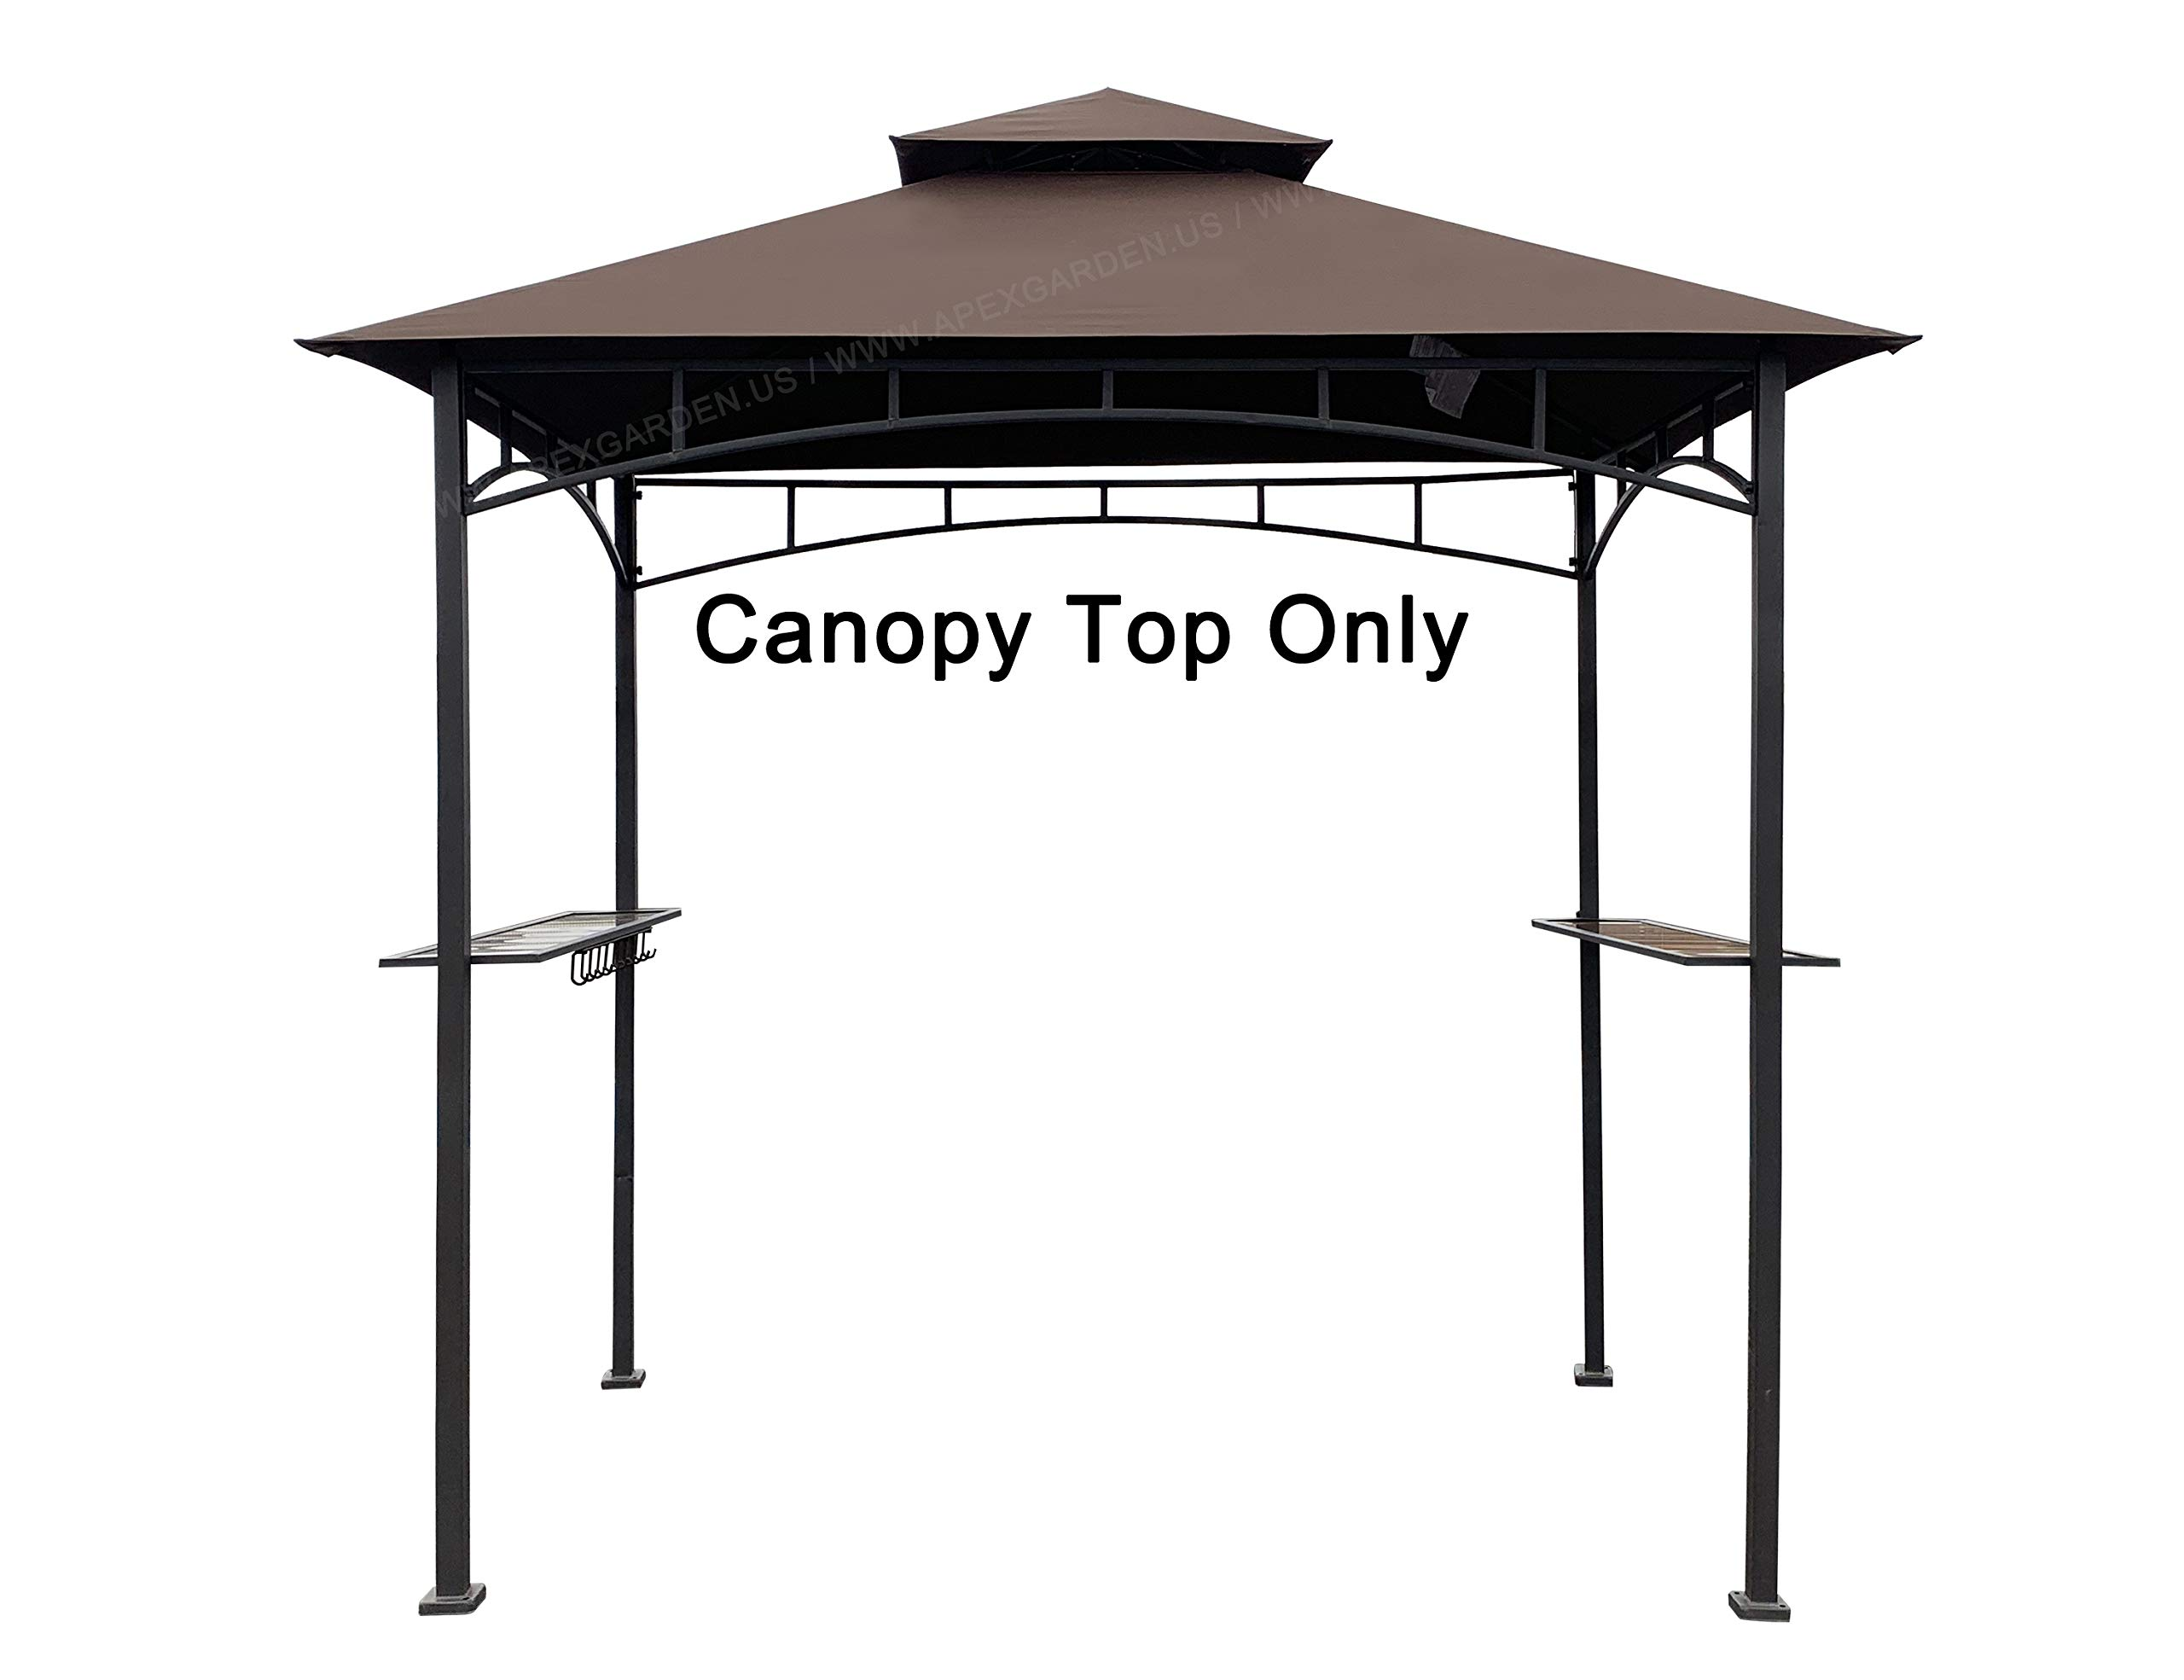 APEX GARDEN Replacement Canopy Top CAN ONLY FIT for Model #L-GG001PST-F 8' X 5' Brown Double Tiered Canopy Grill BBQ Gazebo (Canopy Top Only) by APEX GARDEN